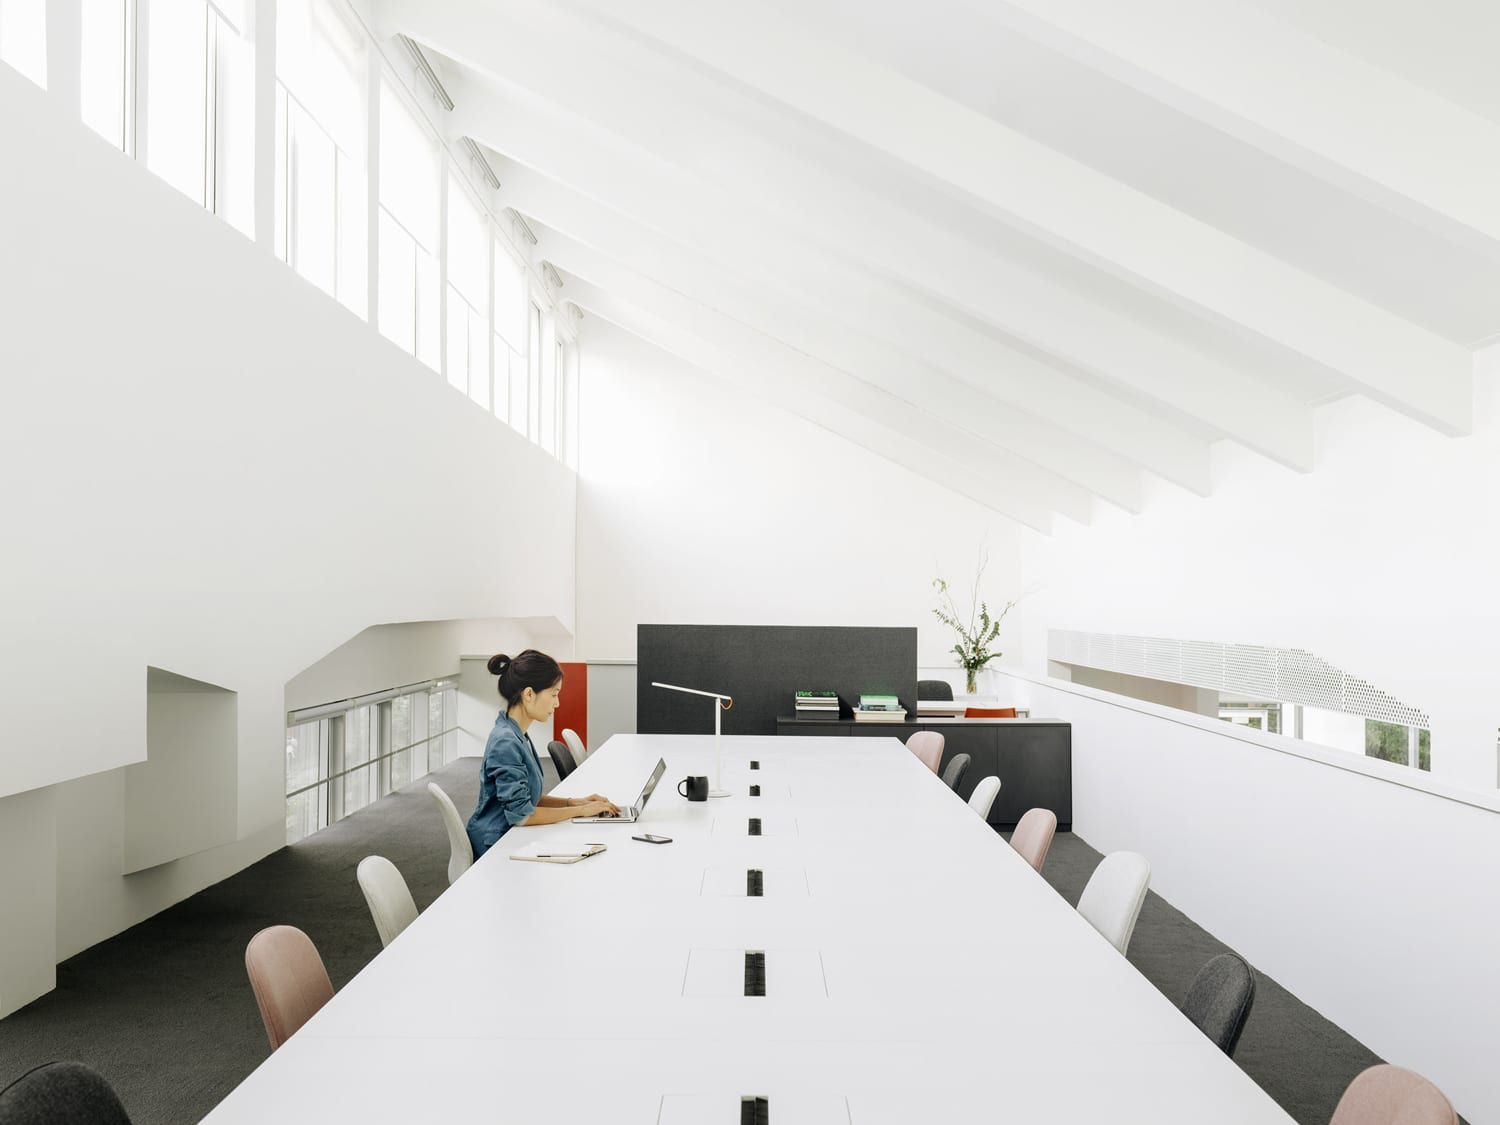 MDDM Studio Converts Beijing Textile Factor into an Office for Film Production Company | Yellowtrace